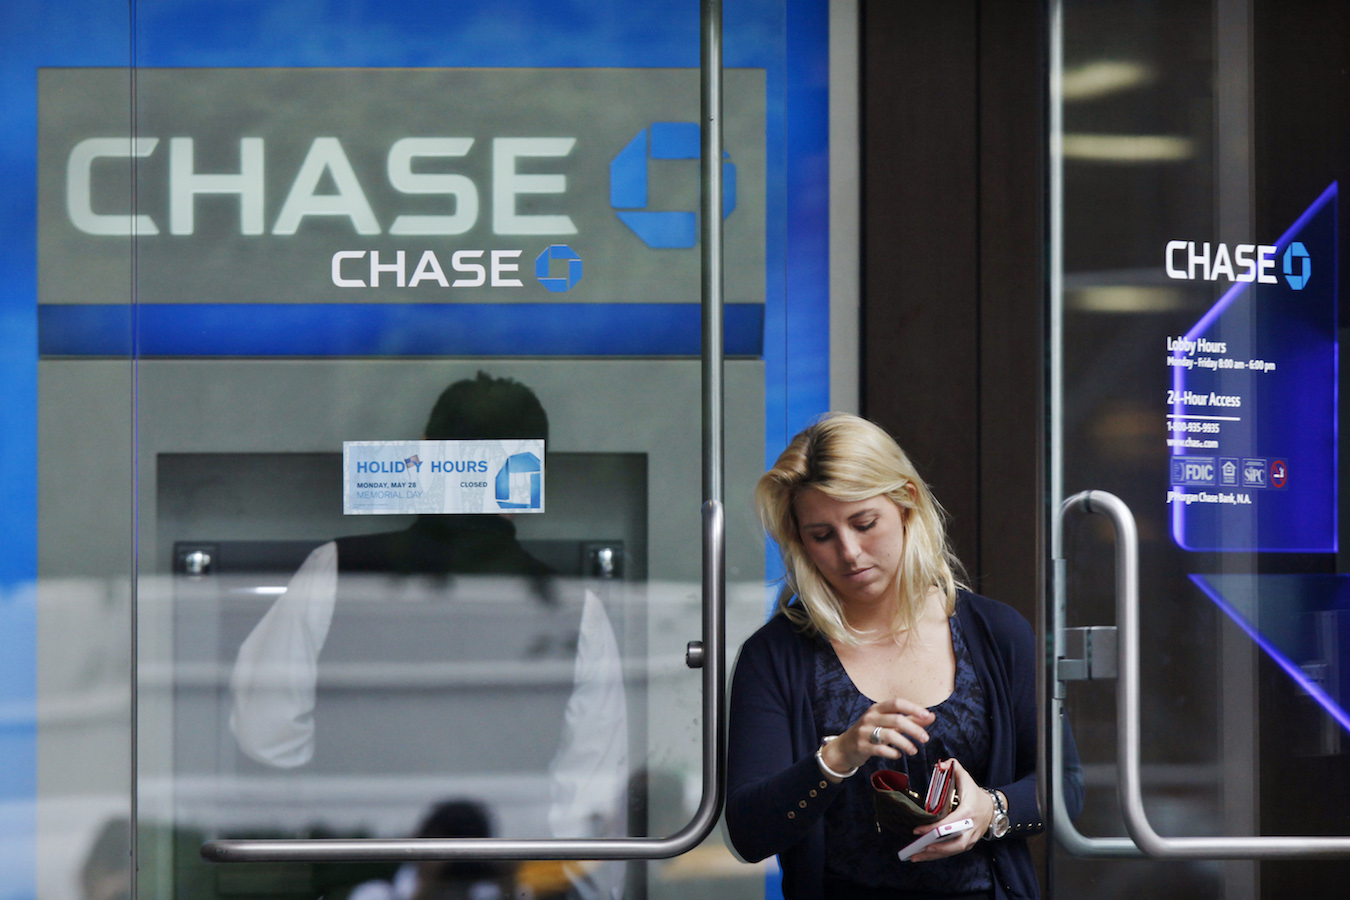 A customer exits the lobby of JPMorgan Chase & Co. headquarters in New York May 22, 2012.  JPMorgan Chase & Co has been hit with a lawsuit brought on behalf of employees whose retirement holdings fell in value after the largest U.S. bank revealed a surprise $2 billion trading loss earlier this month.